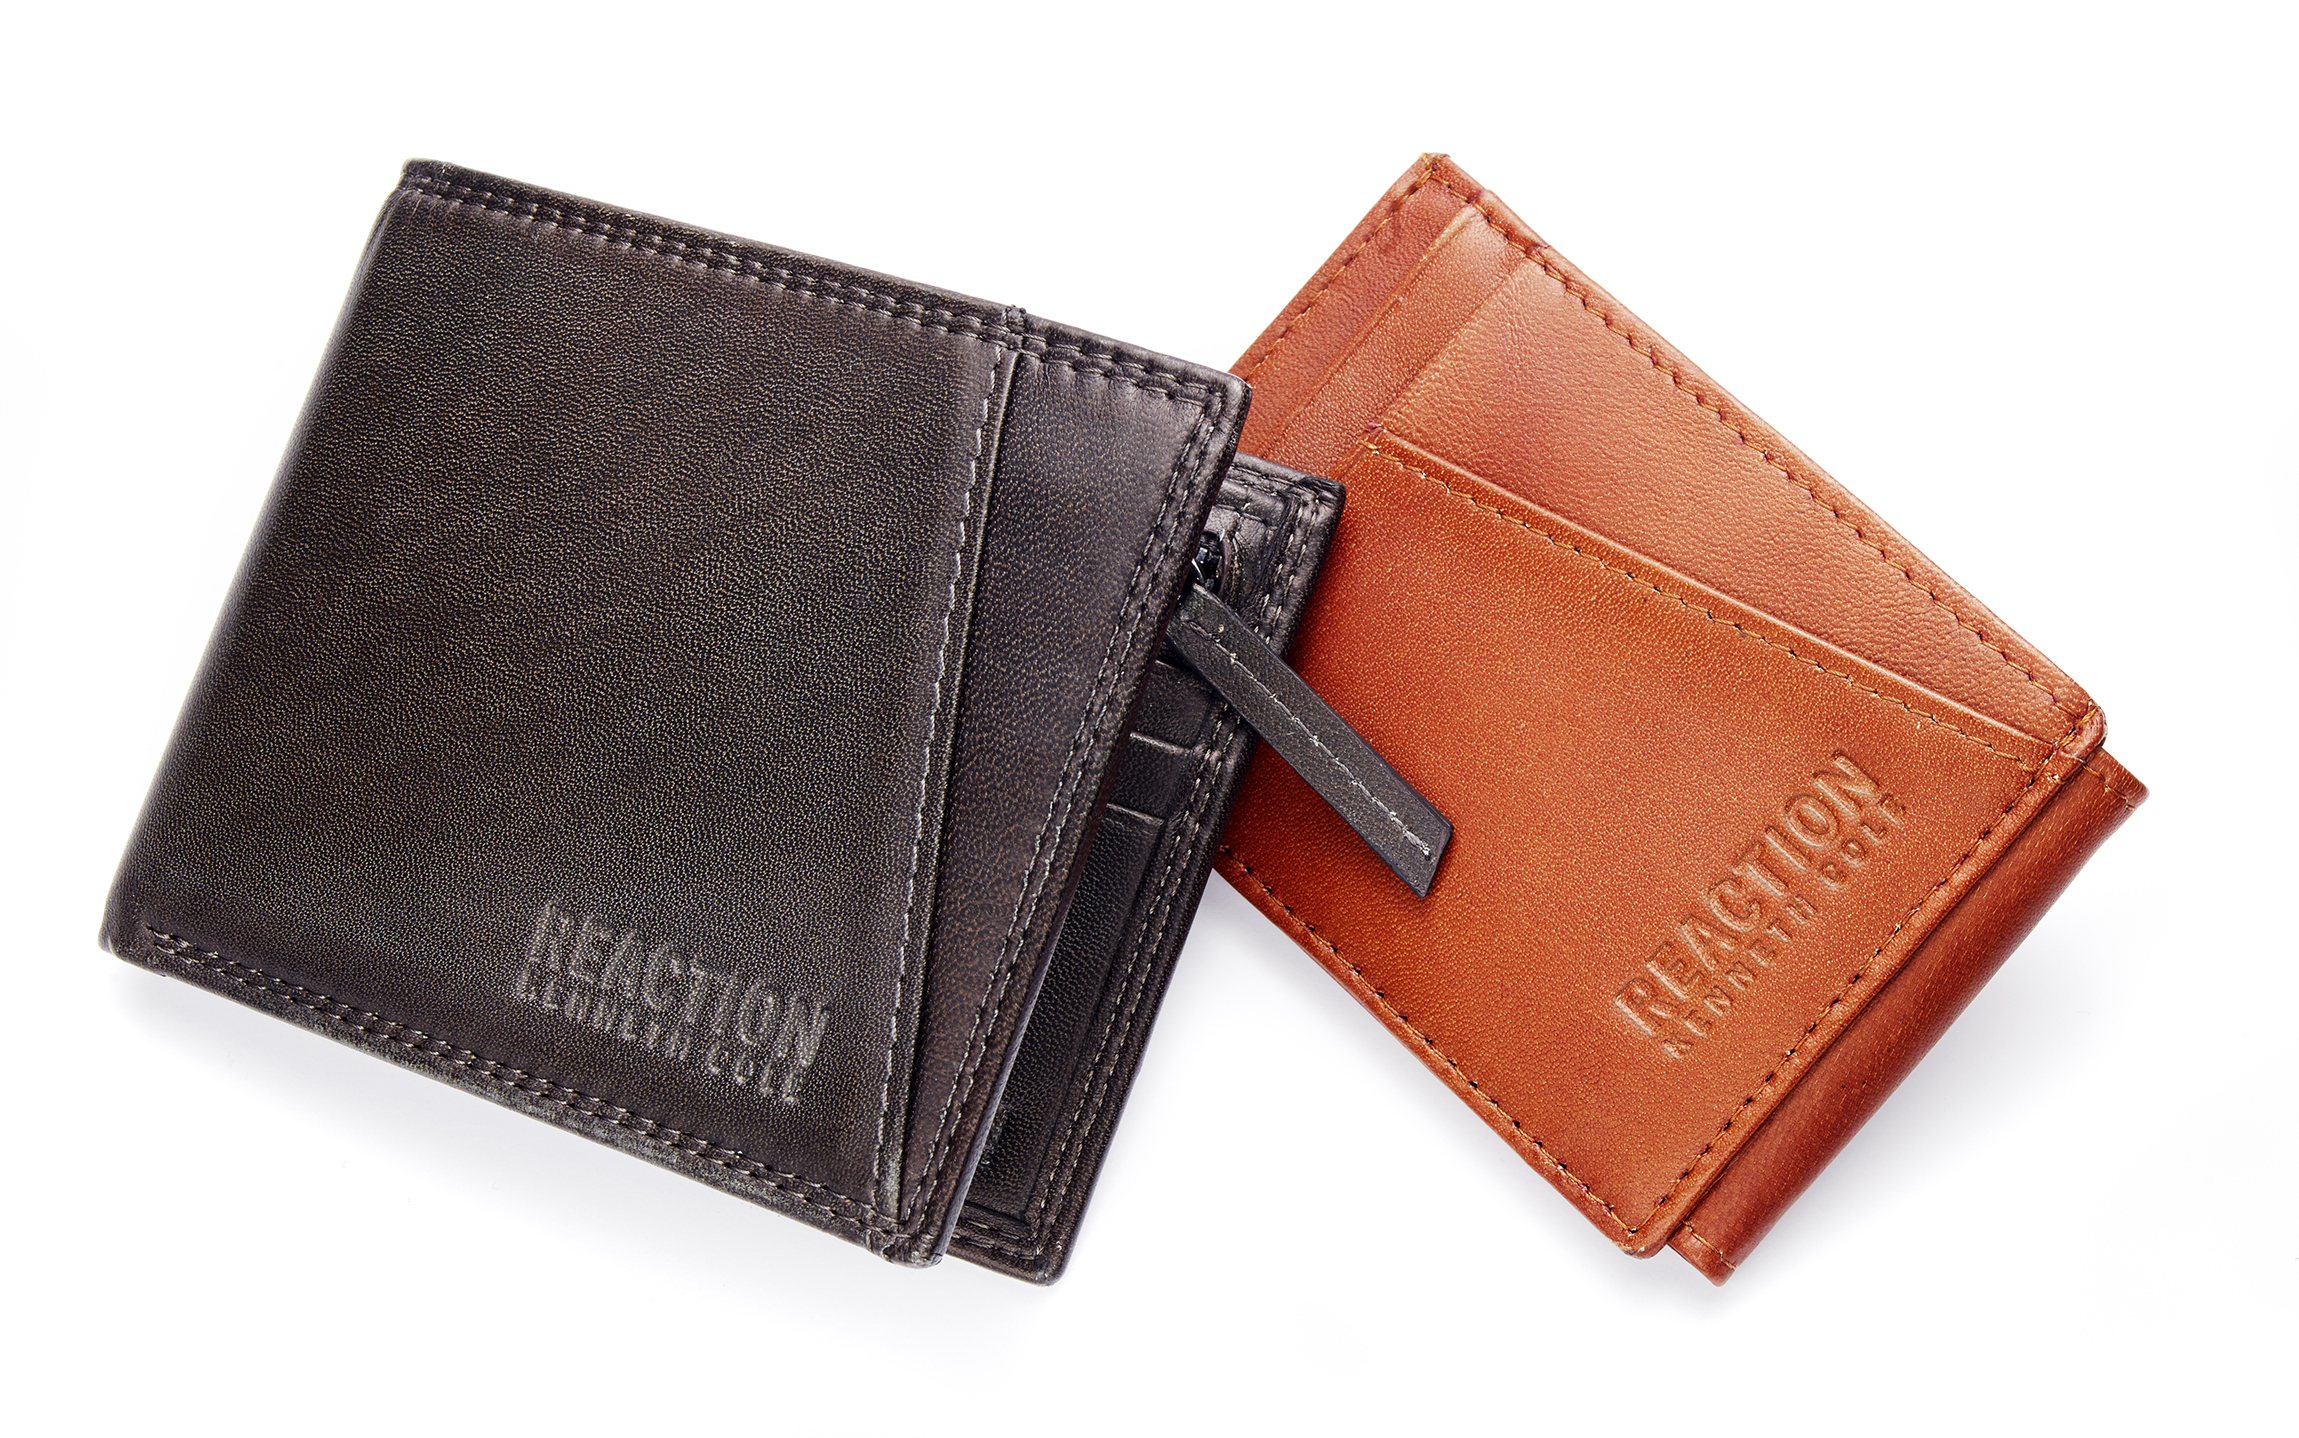 find-the-perfect-gift-for-everyone-on-your-list-this-holiday-season-at-macys-stores-and-on-macys-com-kenneth-cole-reaction-wallets-48-each-photo-business-wire